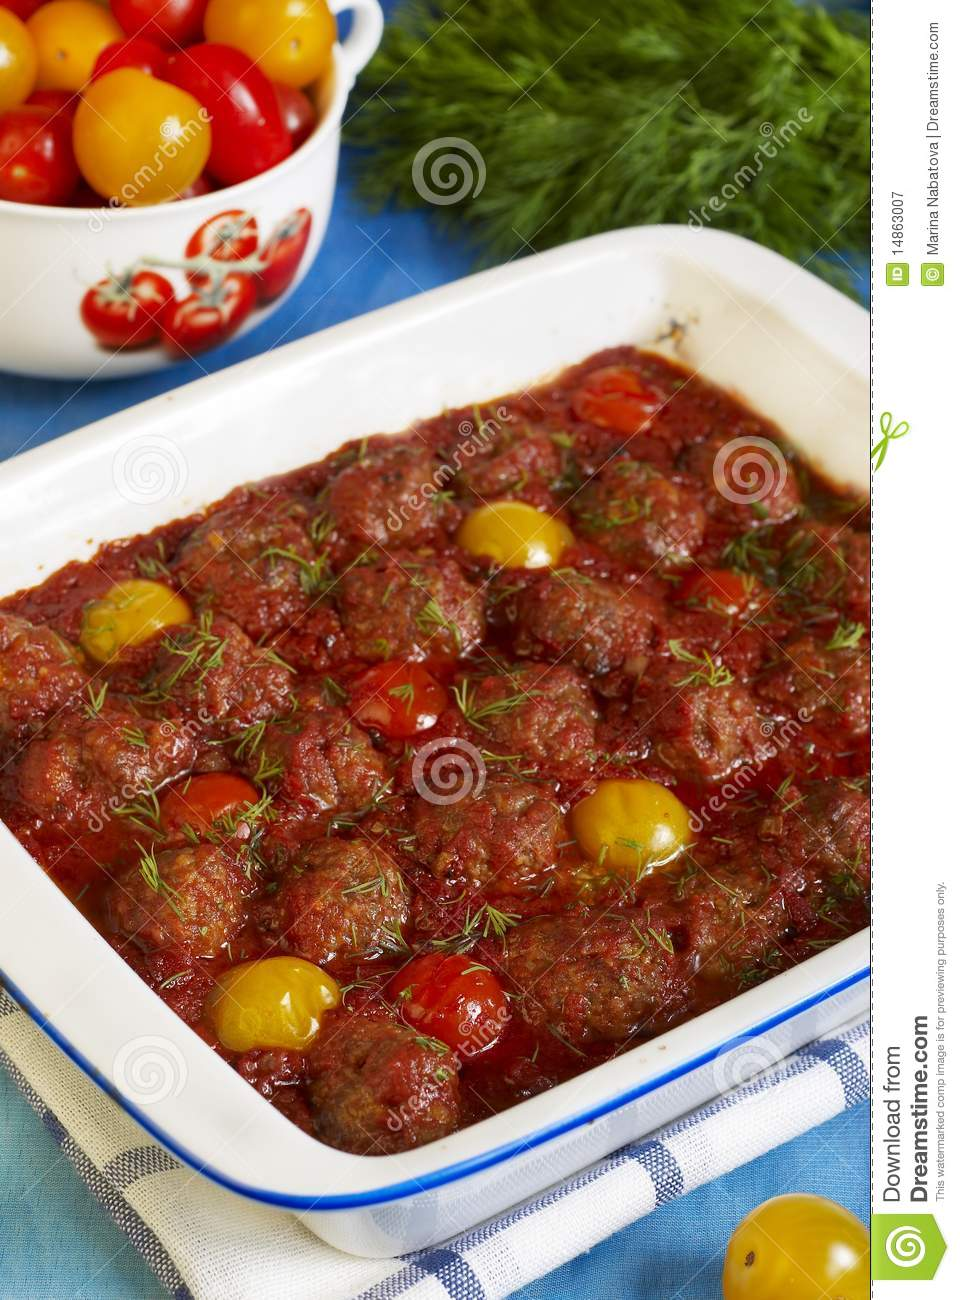 Meatballs And Tomatoes In Tomato Sauce Royalty Free Stock ...